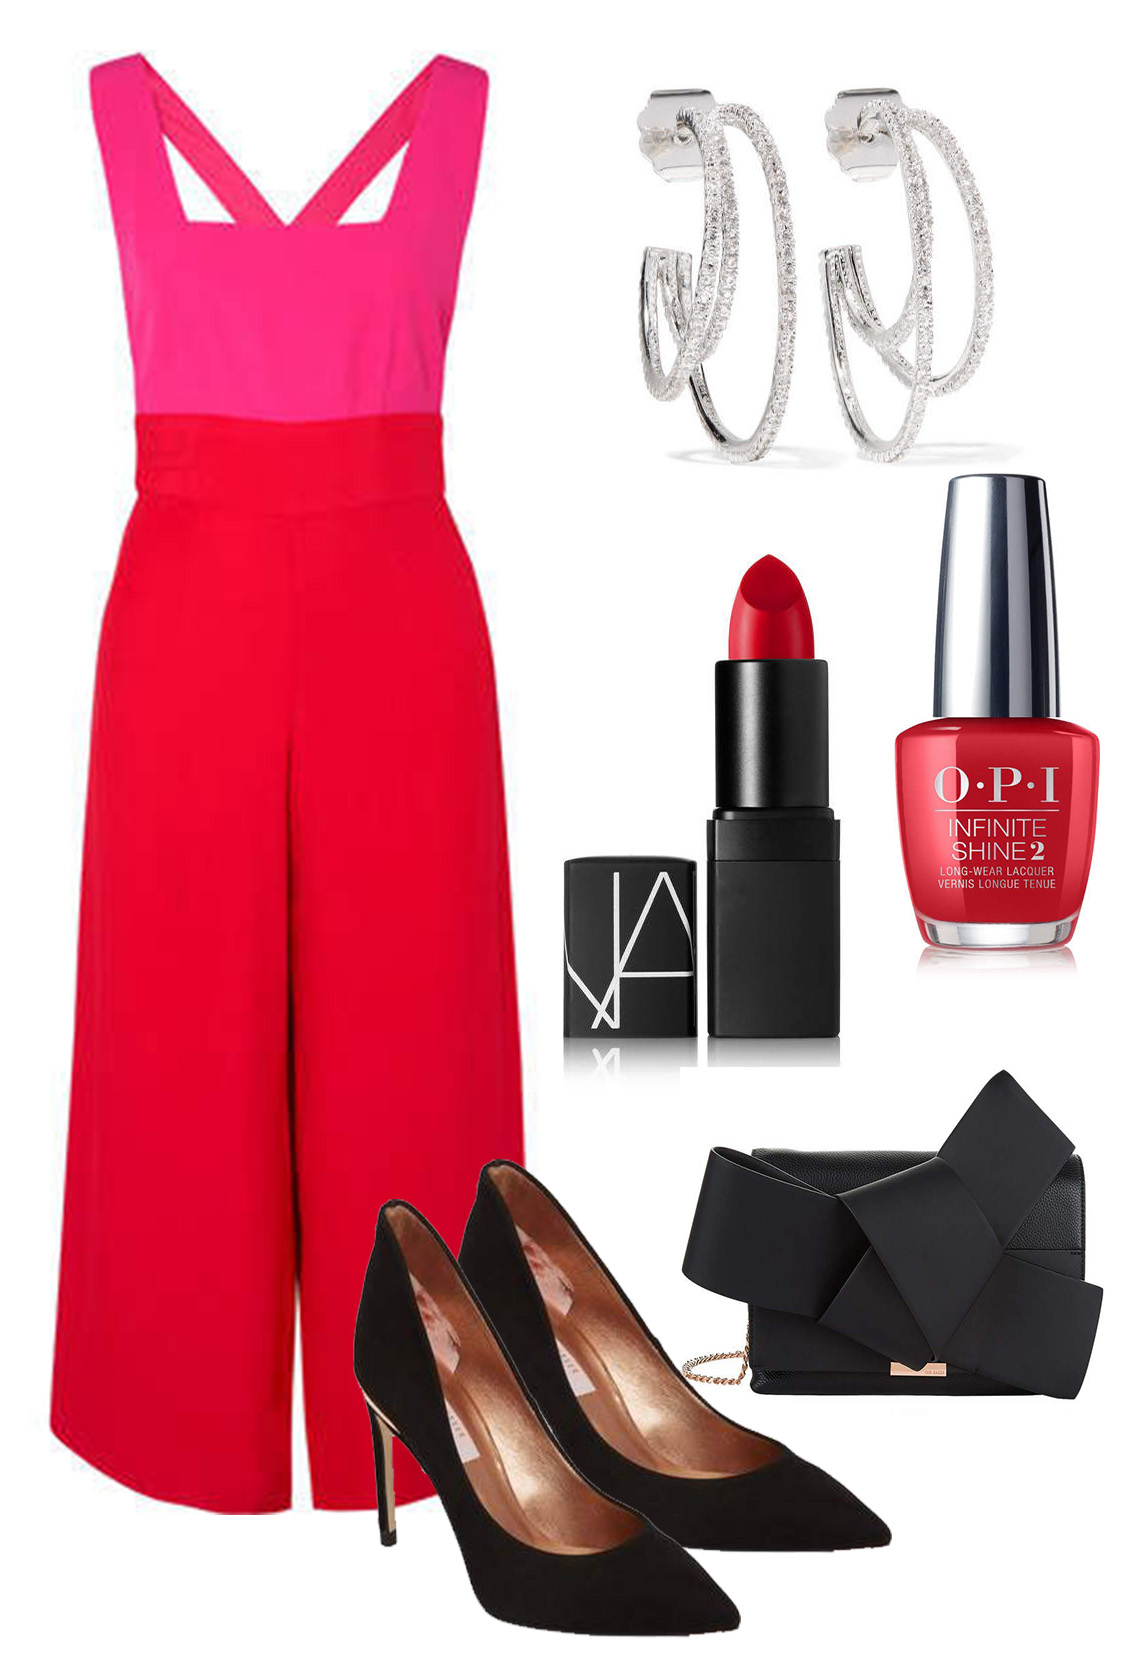 what-to-wear-for-a-spring-wedding-guest-outfit-red-jumpsuit-black-shoe-pumps-black-bag-hoops-nails-dinner.jpg